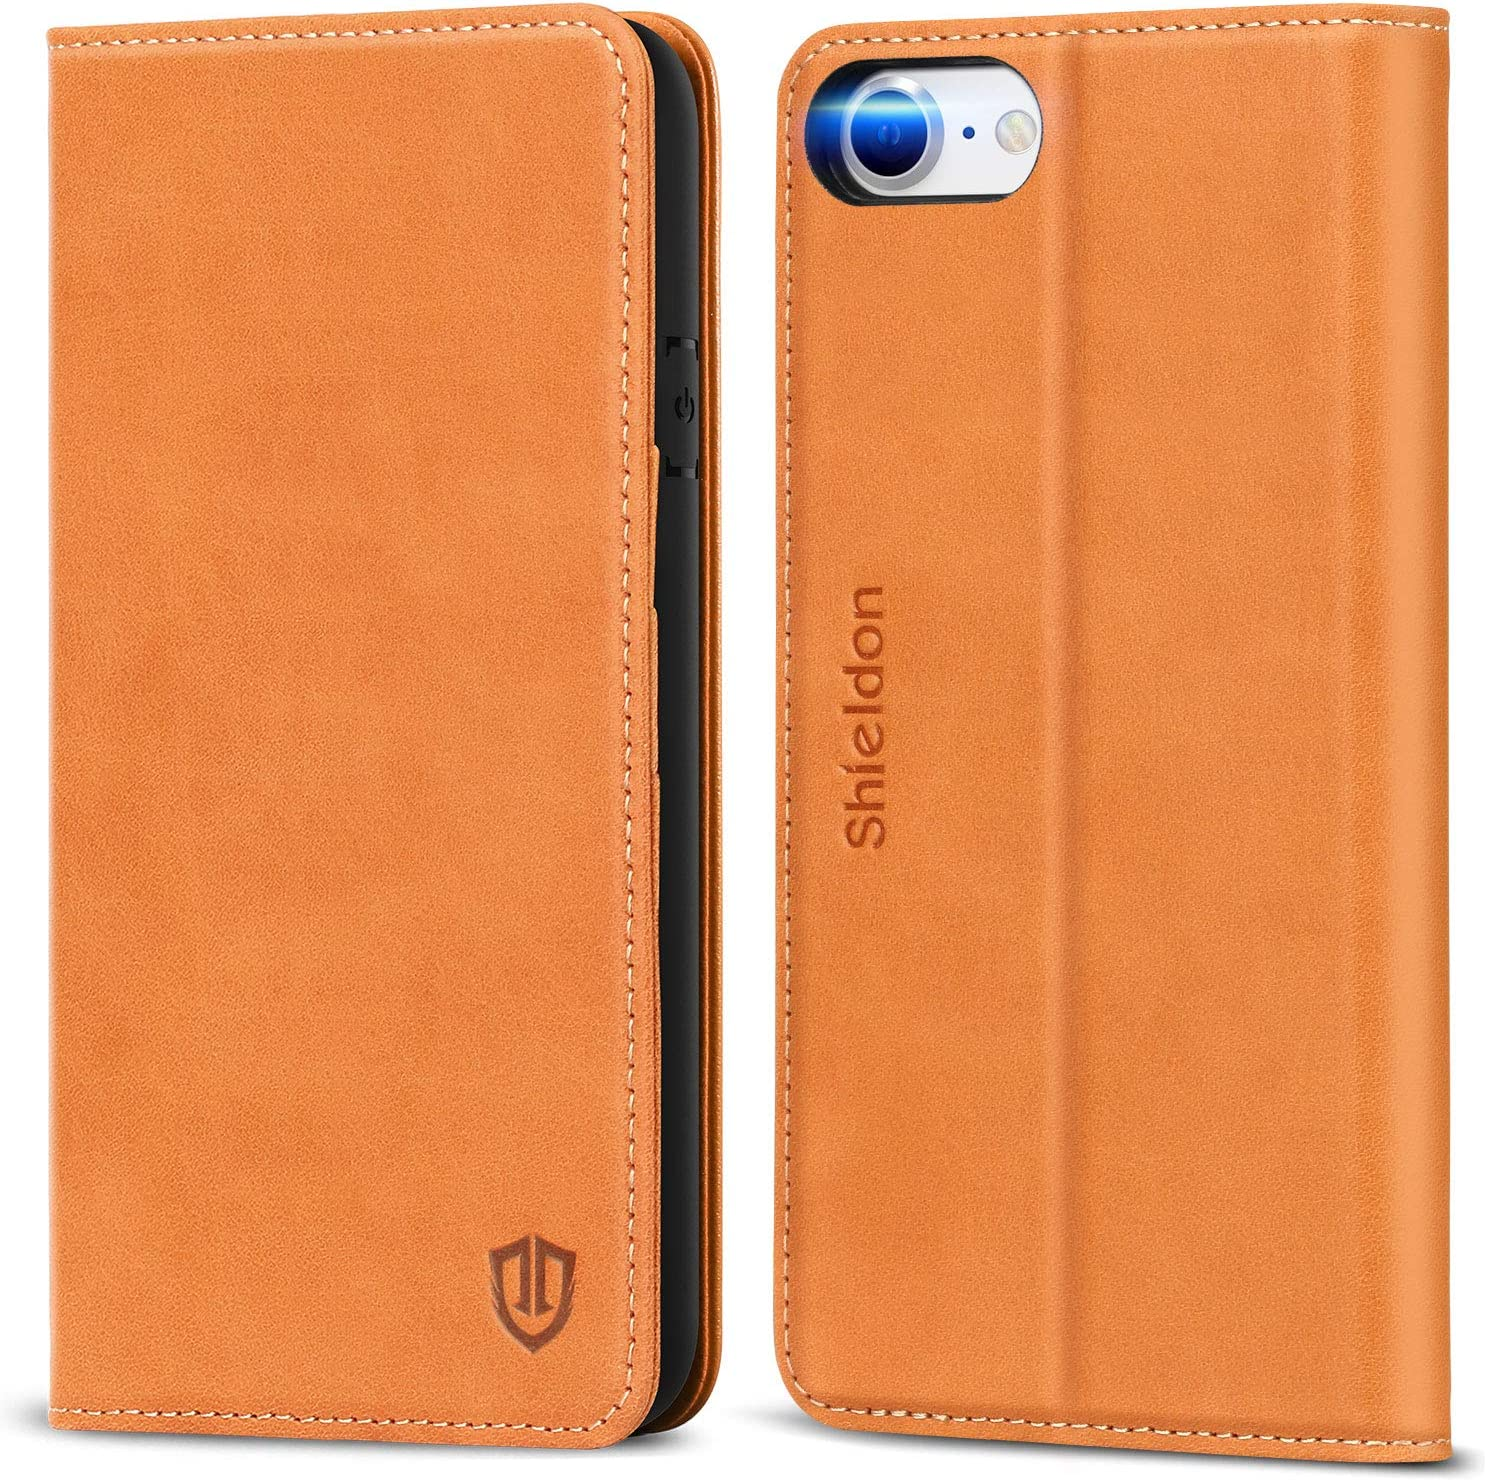 Flip Cover fit for iPhone 7 Plus business gifts Simple-Style Leather Case for iPhone 7 Plus